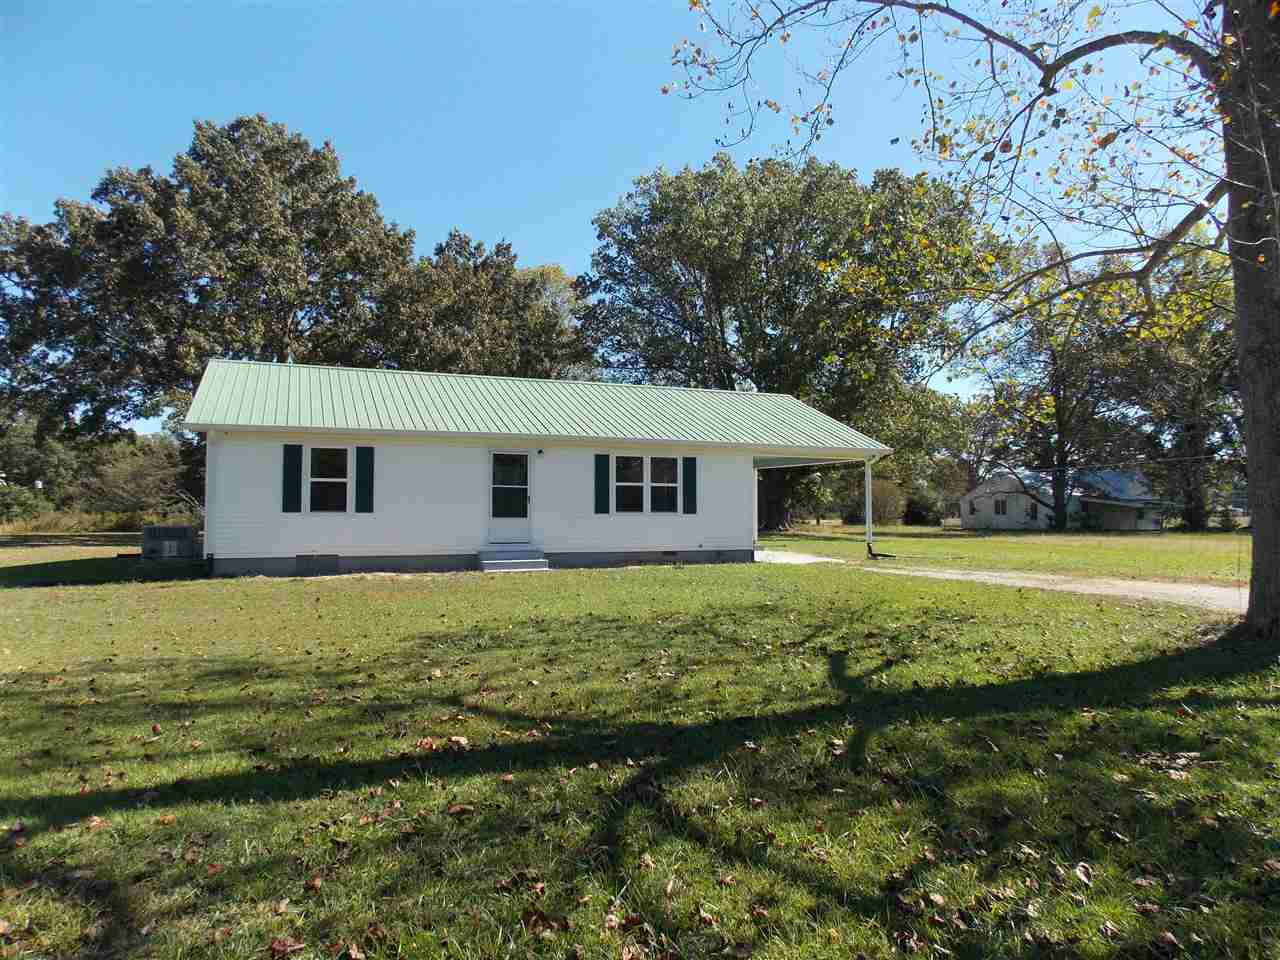 38305 2 Bedroom Home For Sale